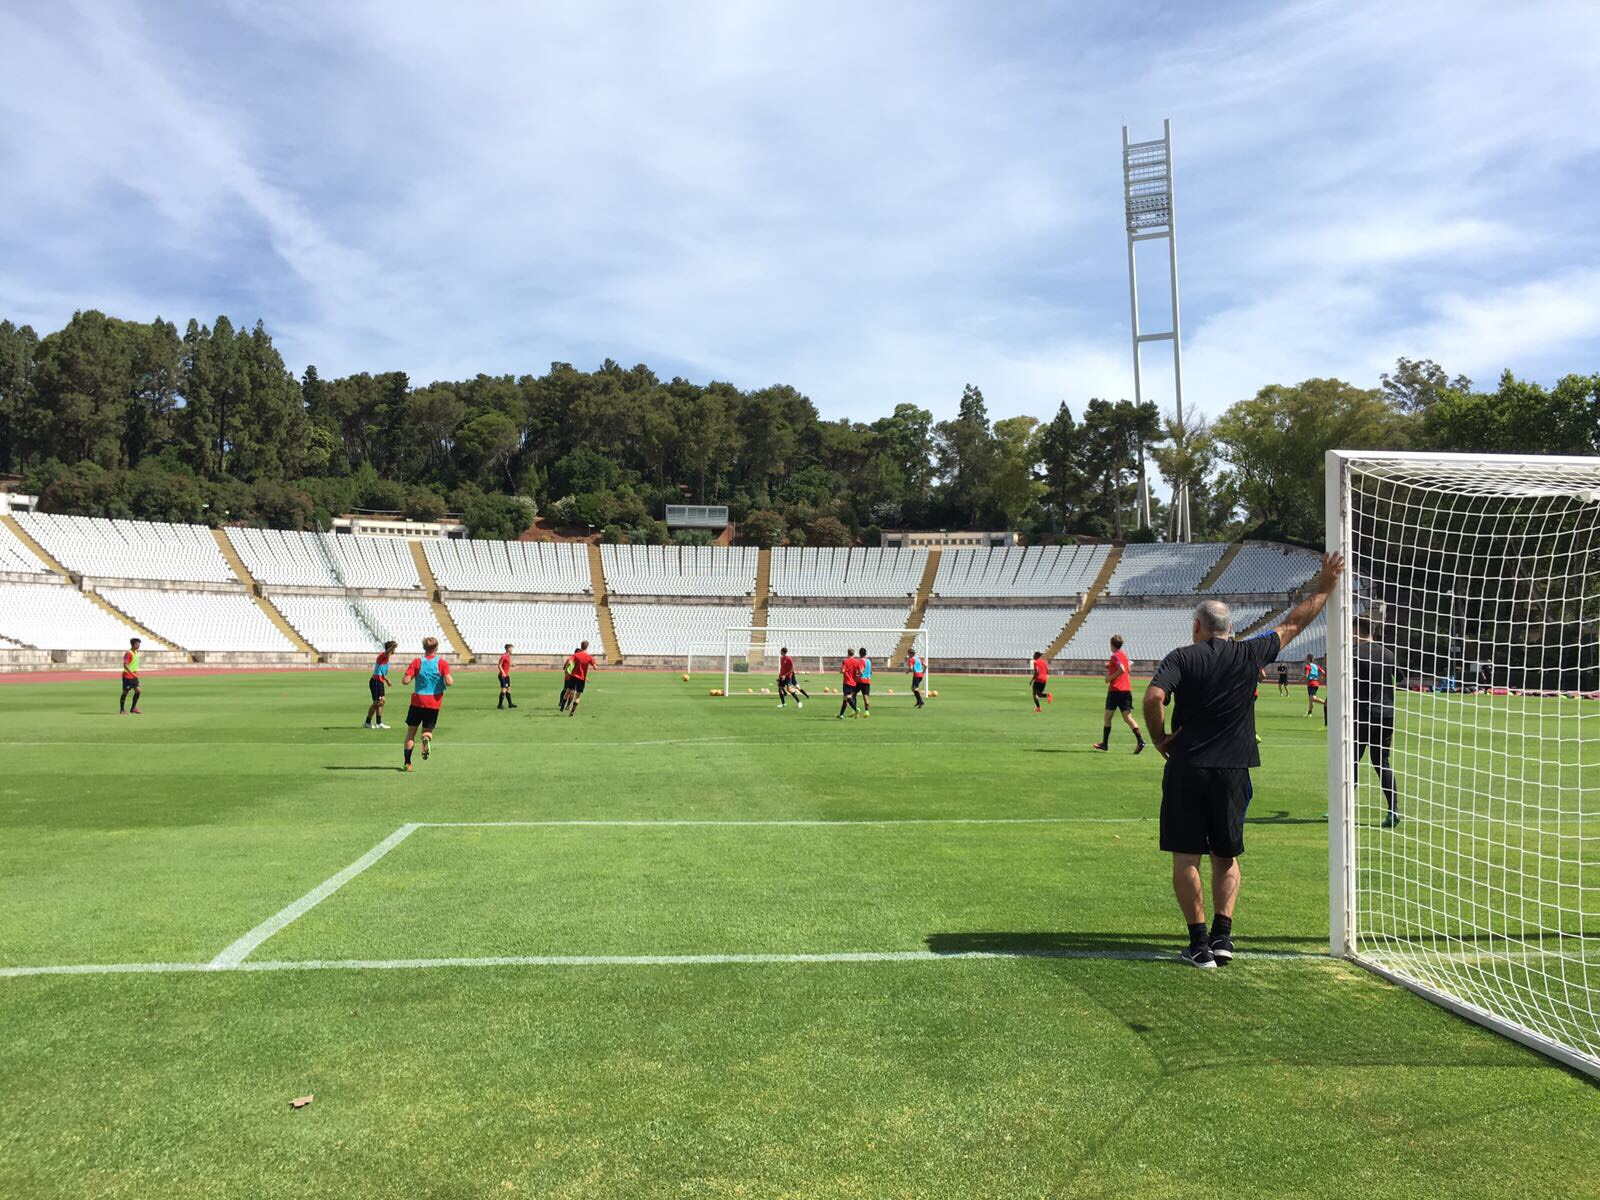 U18 National Team training in Lisbon at Portuguese national stadium, site of U.S. U18 v. Japan on June 14.